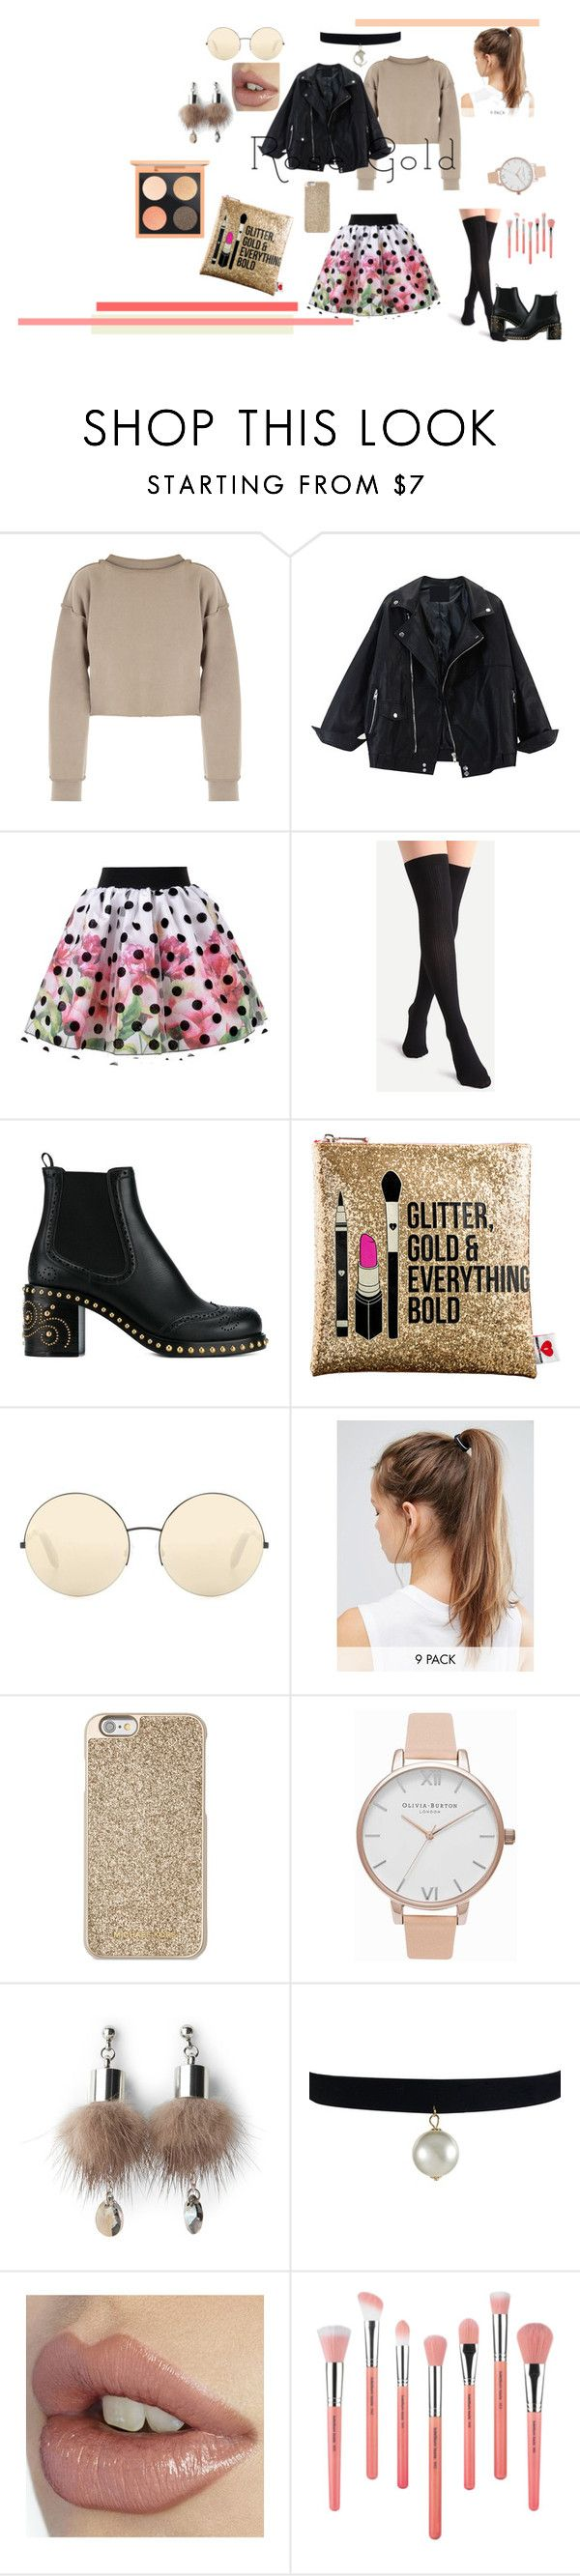 """""""So Pretty: Rose Gold Jewelry"""" by beautiful-me14 ❤ liked on Polyvore featuring My Mum Made It, Love Made Love, Miu Miu, Sephora Collection, Victoria Beckham, NIKE, Michael Kors, Olivia Burton, Simons and Bdellium Tools"""